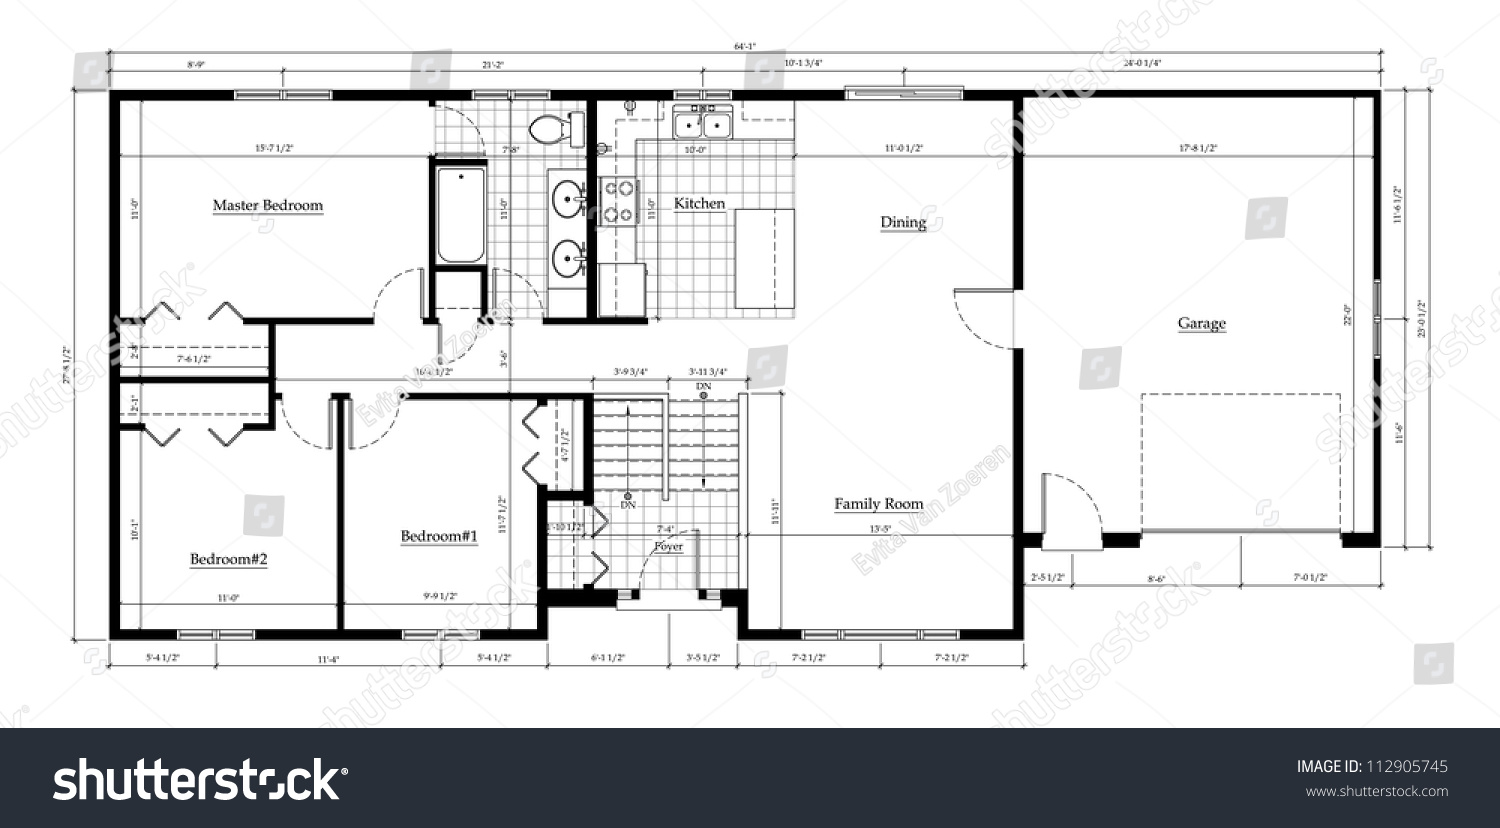 Split level house floor plan with room names and for Stock house plans